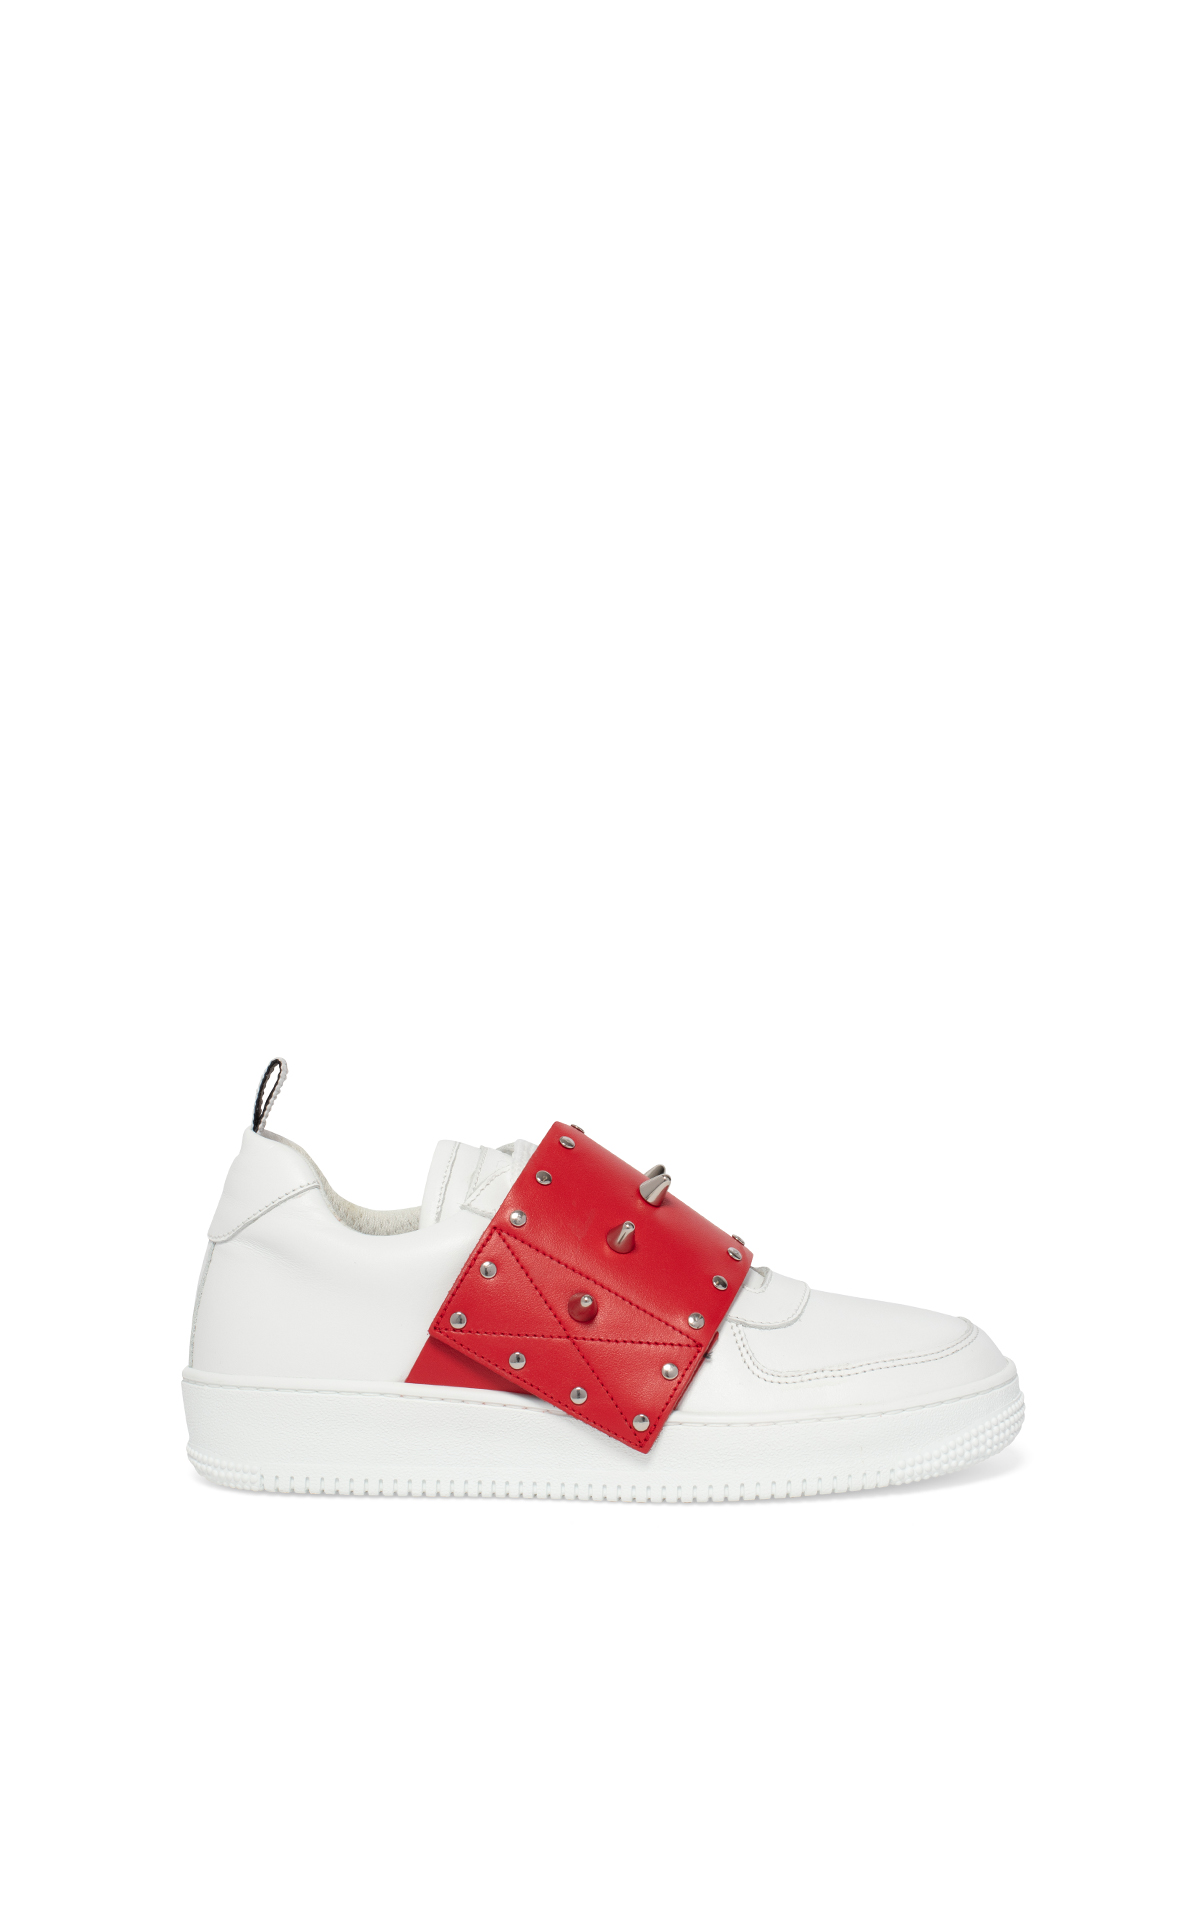 REDValentino Women's red and white sneakers*